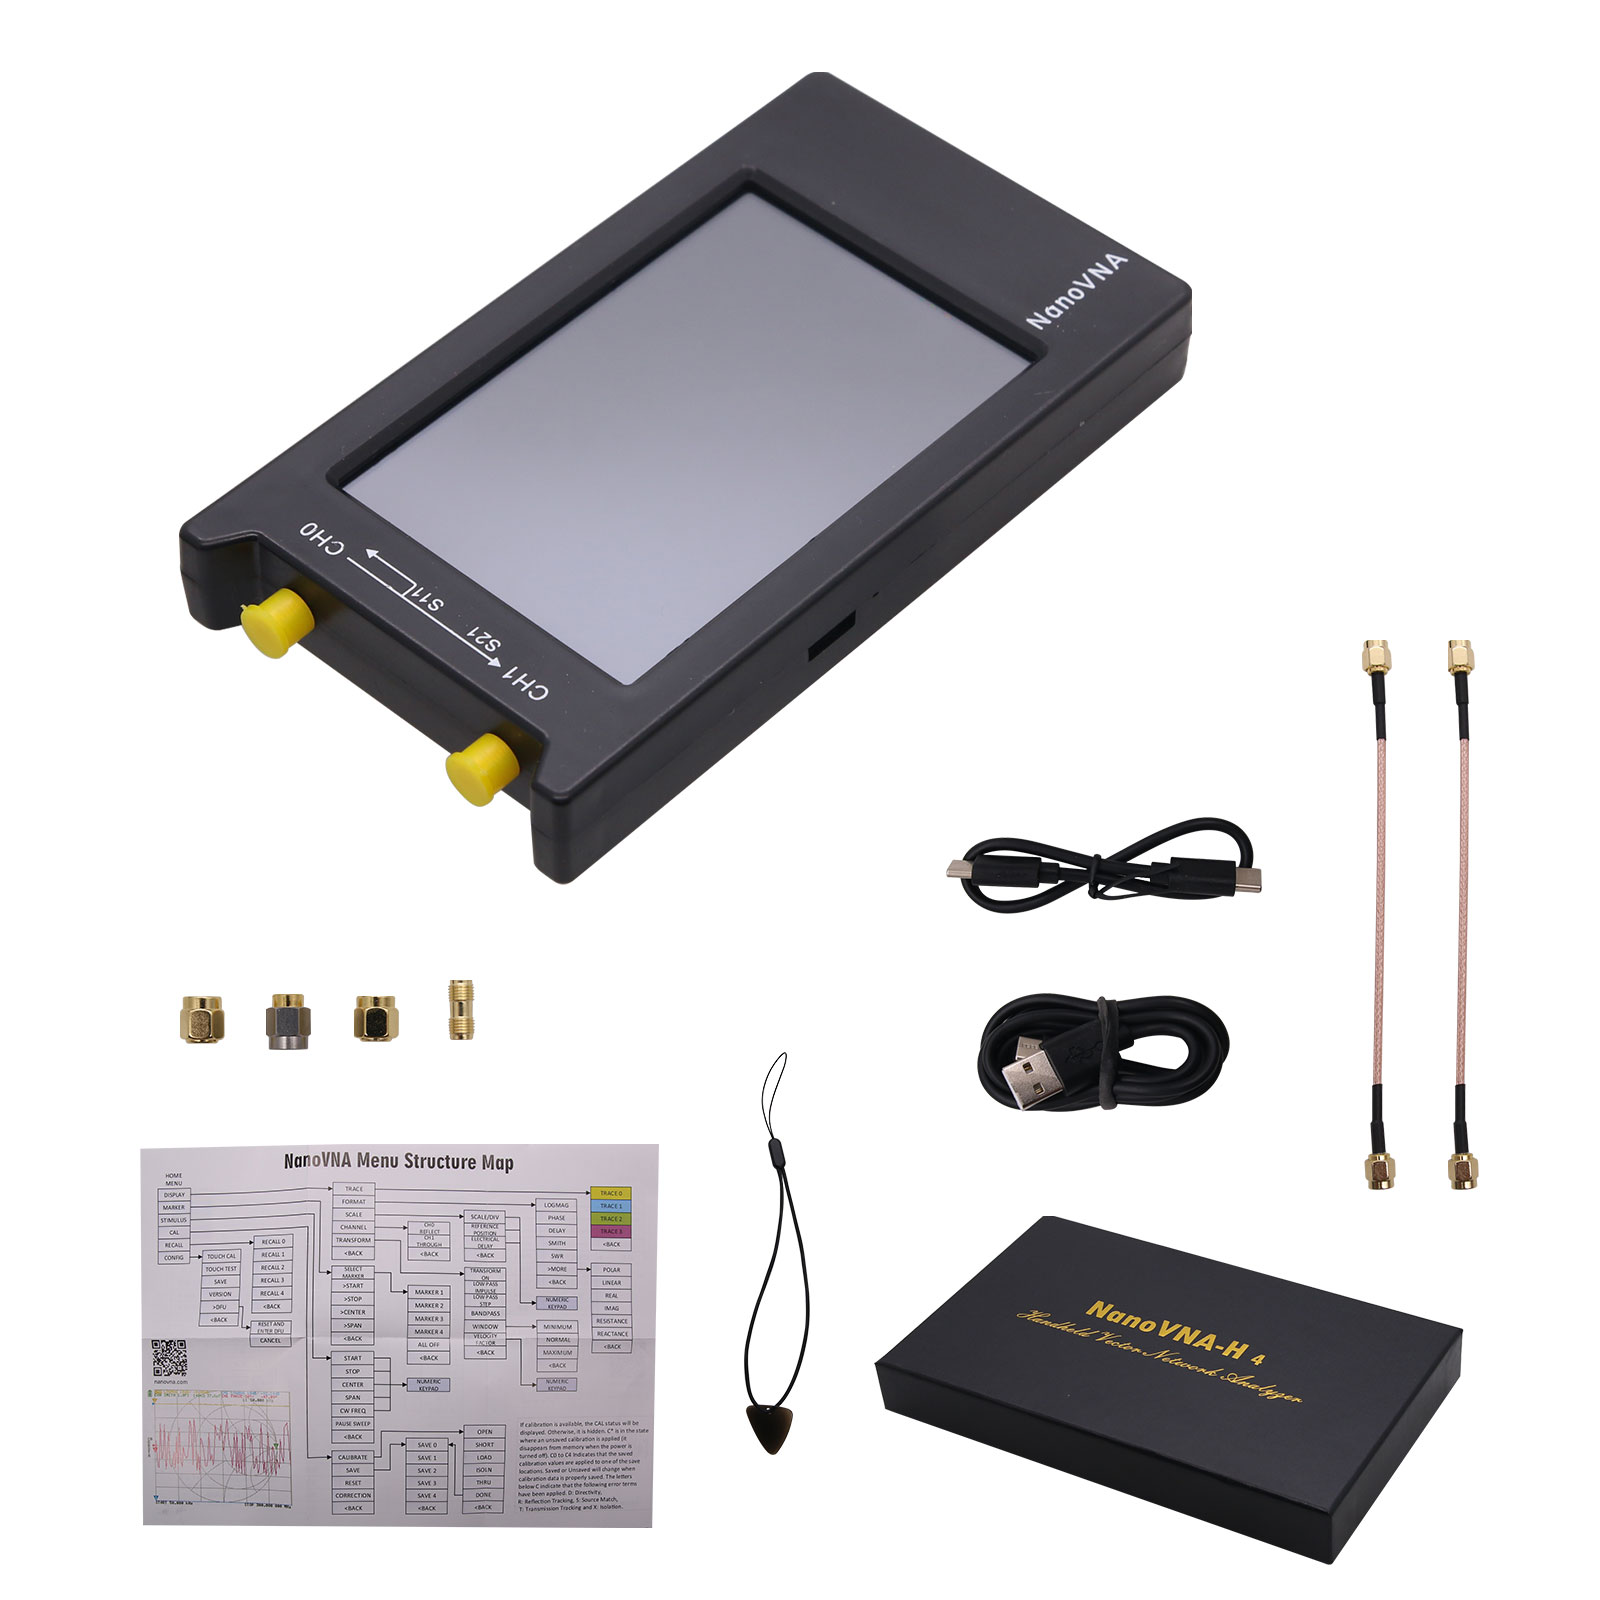 Network Antenna Analyzer NanoVNA-H4 10KHz~1.5GHz VNA 4inch LCD 1950MAh Battery HF VHF UHF UV Vector  4.0 inches